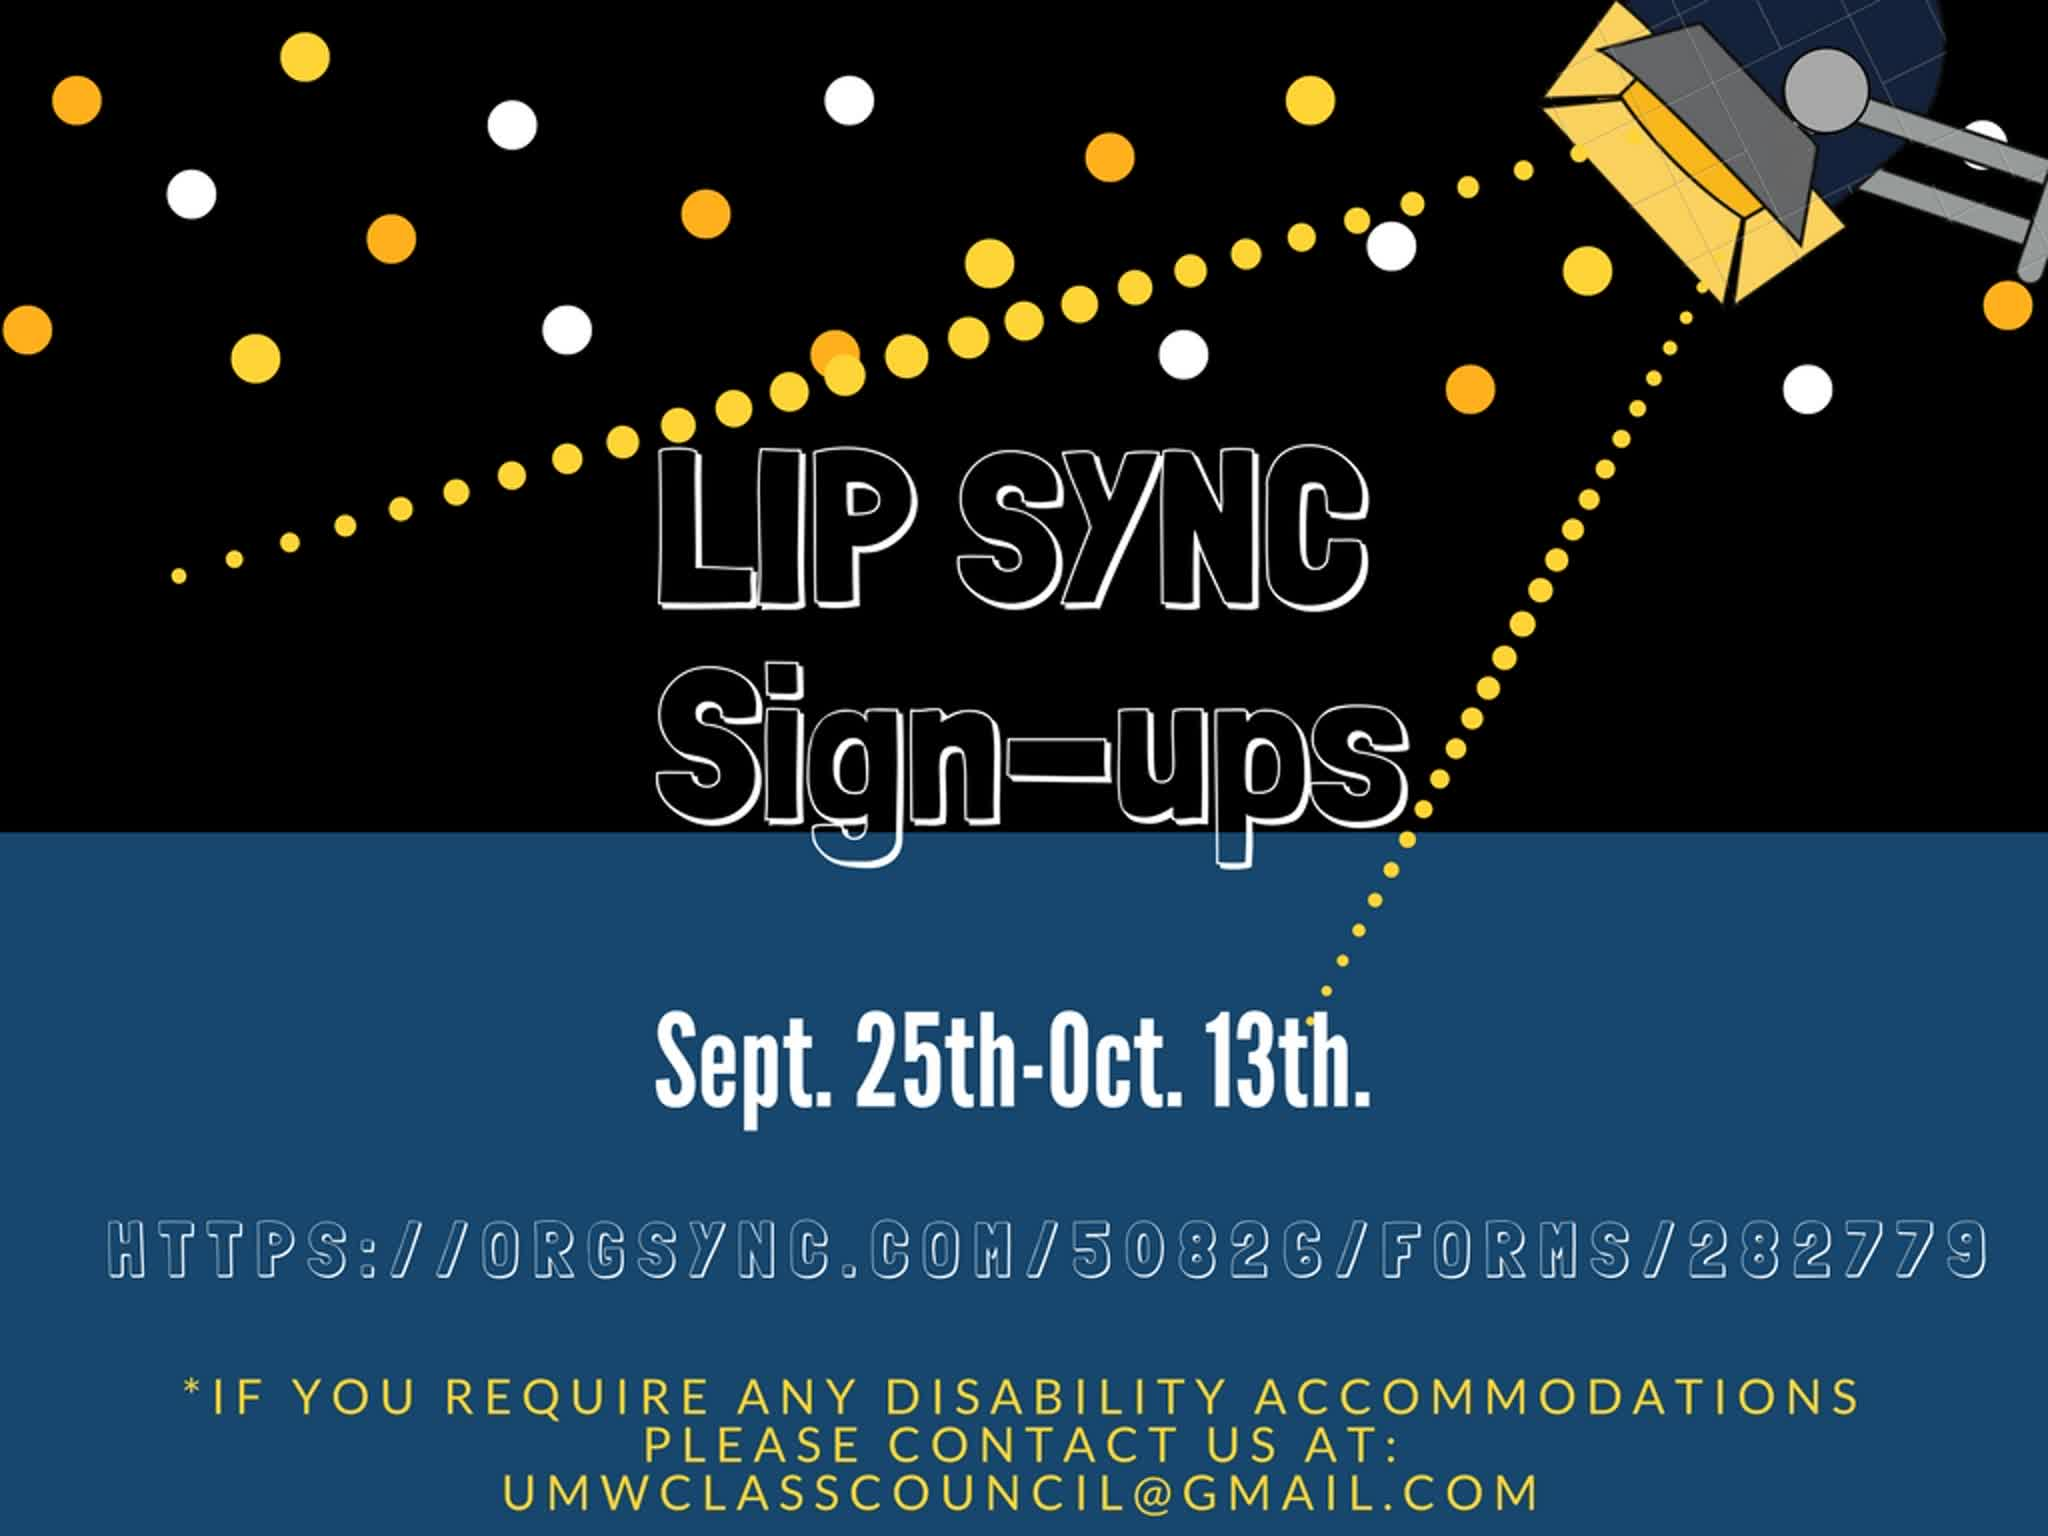 Information regarding Lip sync sign-ups is as follows Create Your Own Tag: is #LipSync and Start date is September 25 2017 and End Date is October 13 2017 and File is Browse and Group Name is Class Council and Email is ghowie@mail.umw.edu and Name is Grace Howie and File Name is lip-sync1_comp.jpg and Name of Ad/Event is Lip sync sign-ups and Panel is Main and Affiliation is Recognized Student Organization and